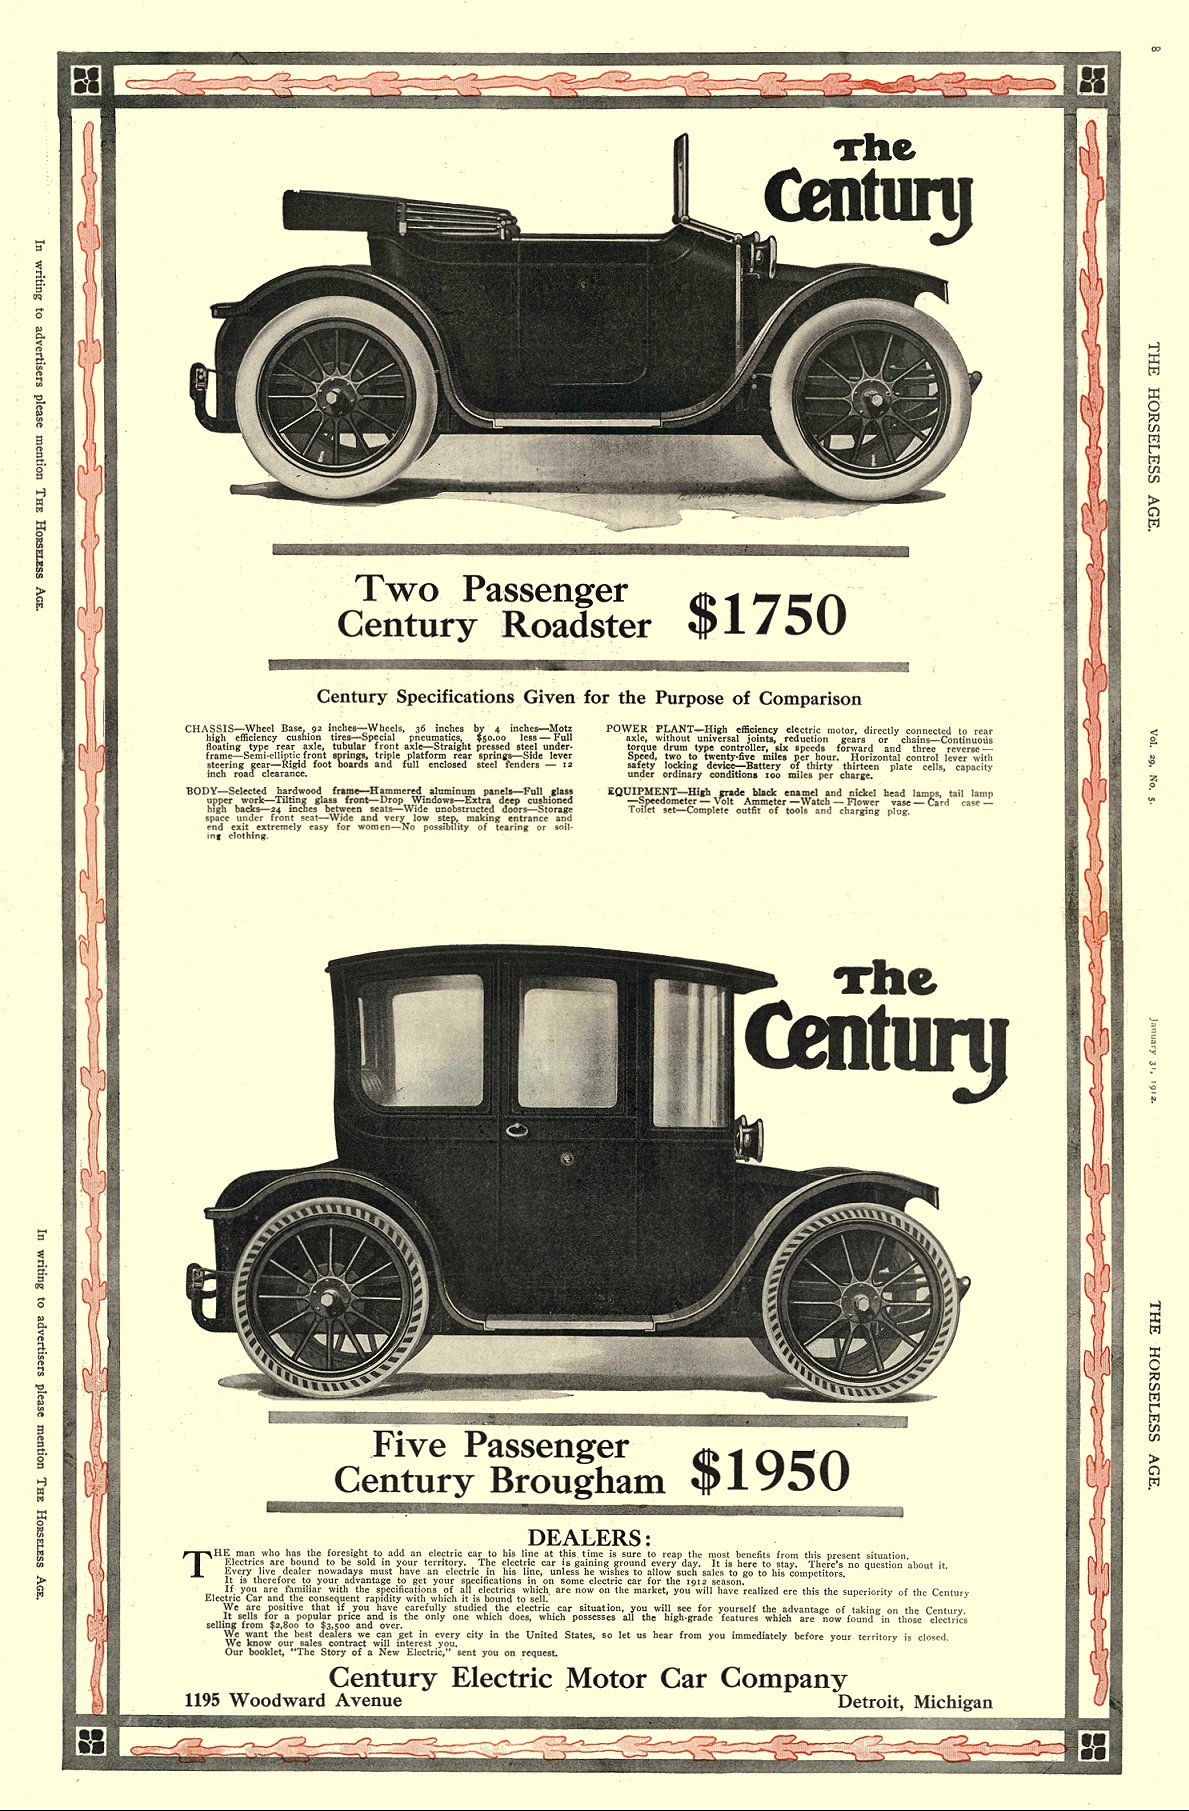 1912 1 31 Two Passenger Century Roadster $1750 Century Electric Motor Car Company Detroit, MICH THE HORSELESS AGE January 31, 1912 12″x8.75″ pages 8 & 9